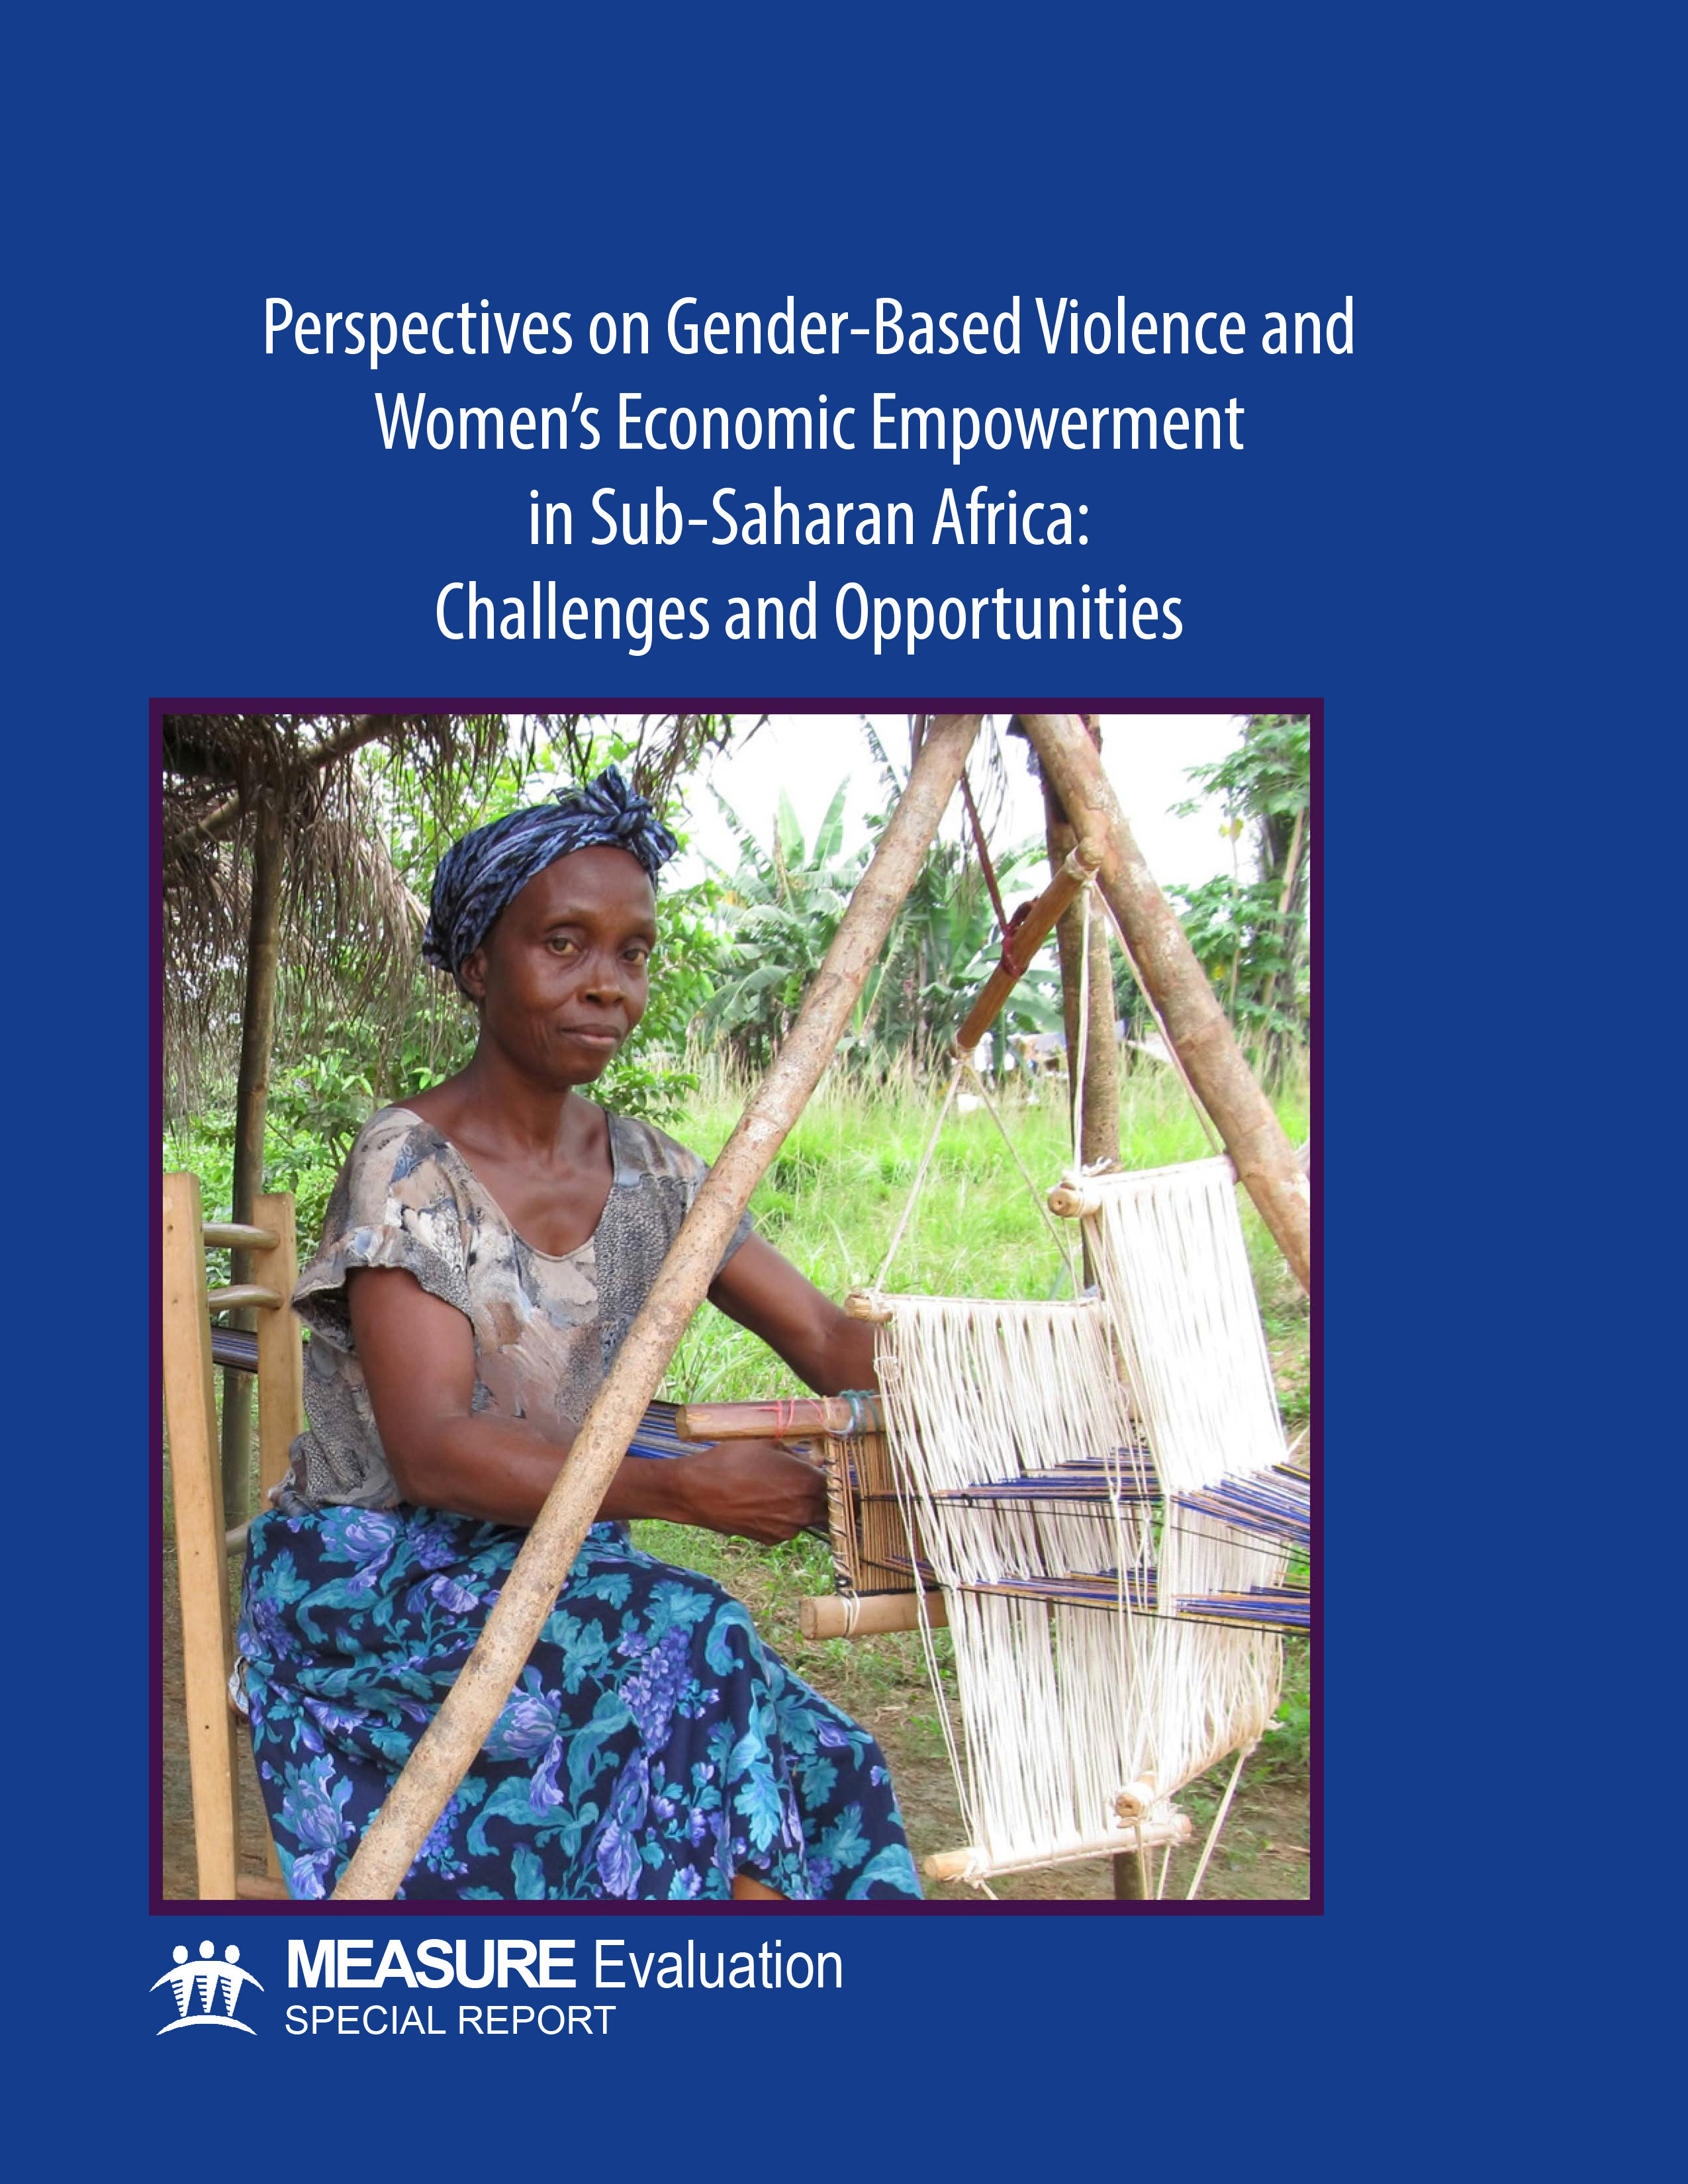 Perspectives on Gender-Based Violence and Womens Economic Empowerment in Sub-Saharan Africa: Challenges and Opportunities